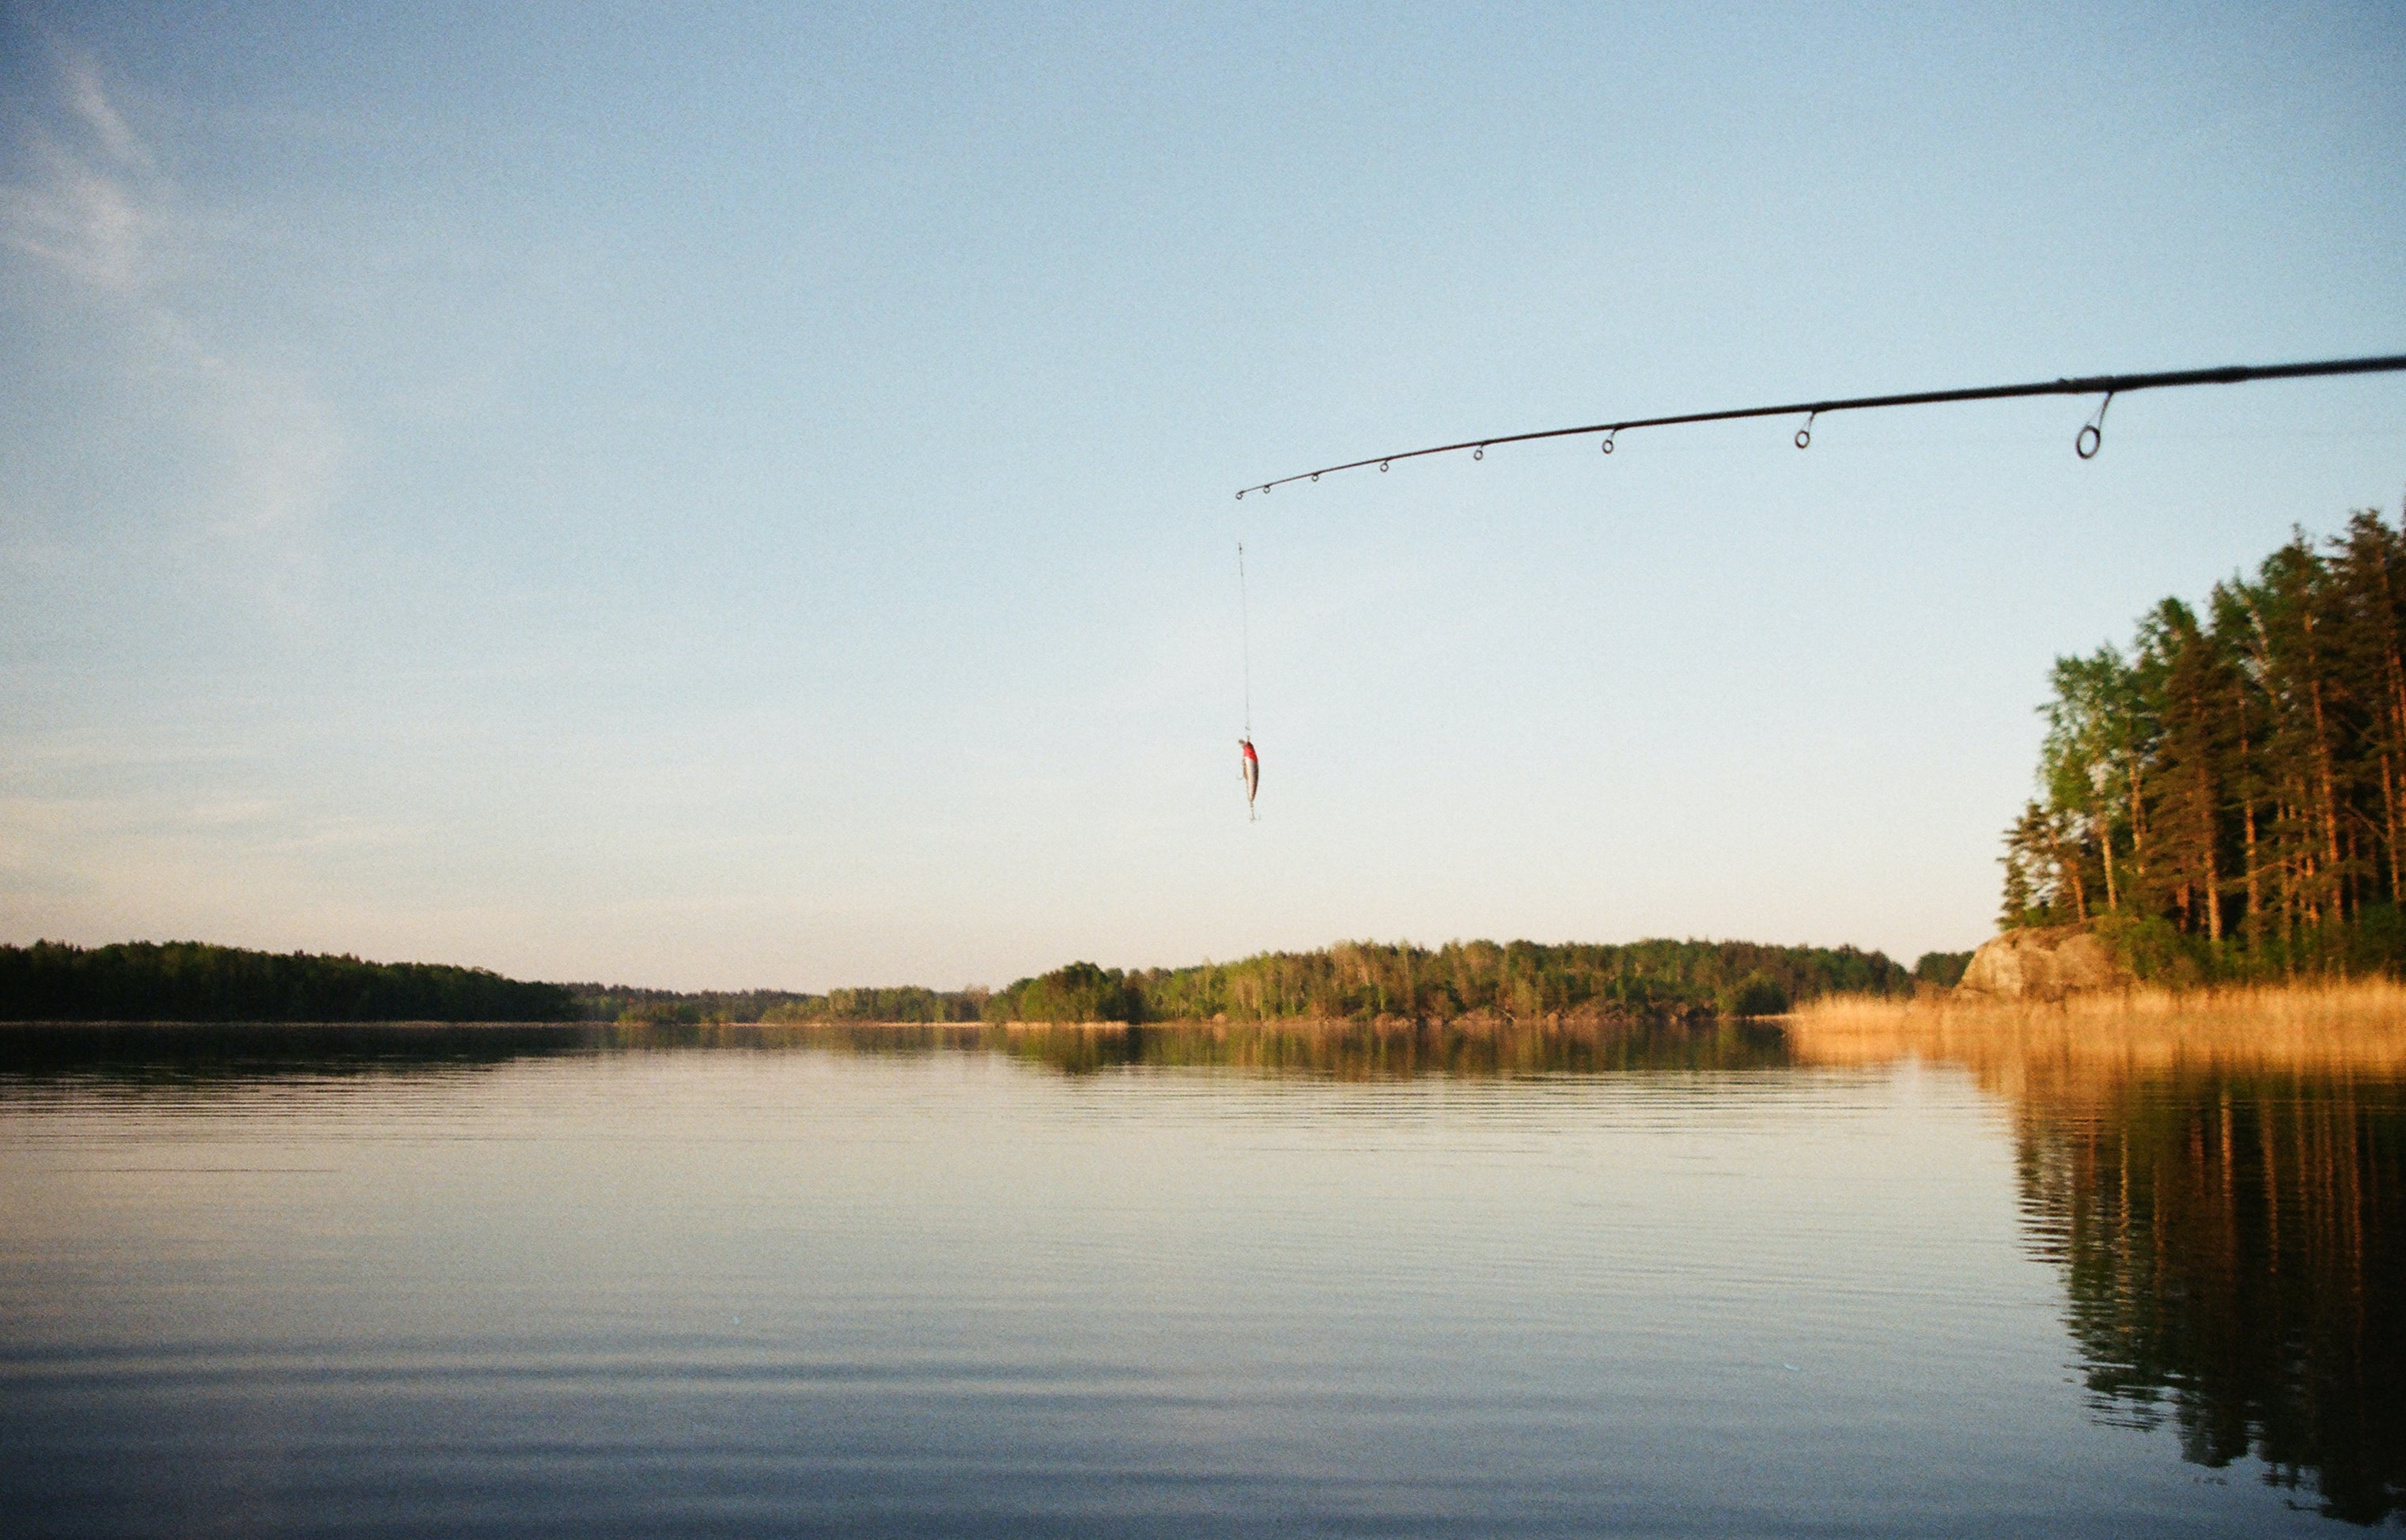 A fishing rod with a fish dangling on the line over a lake